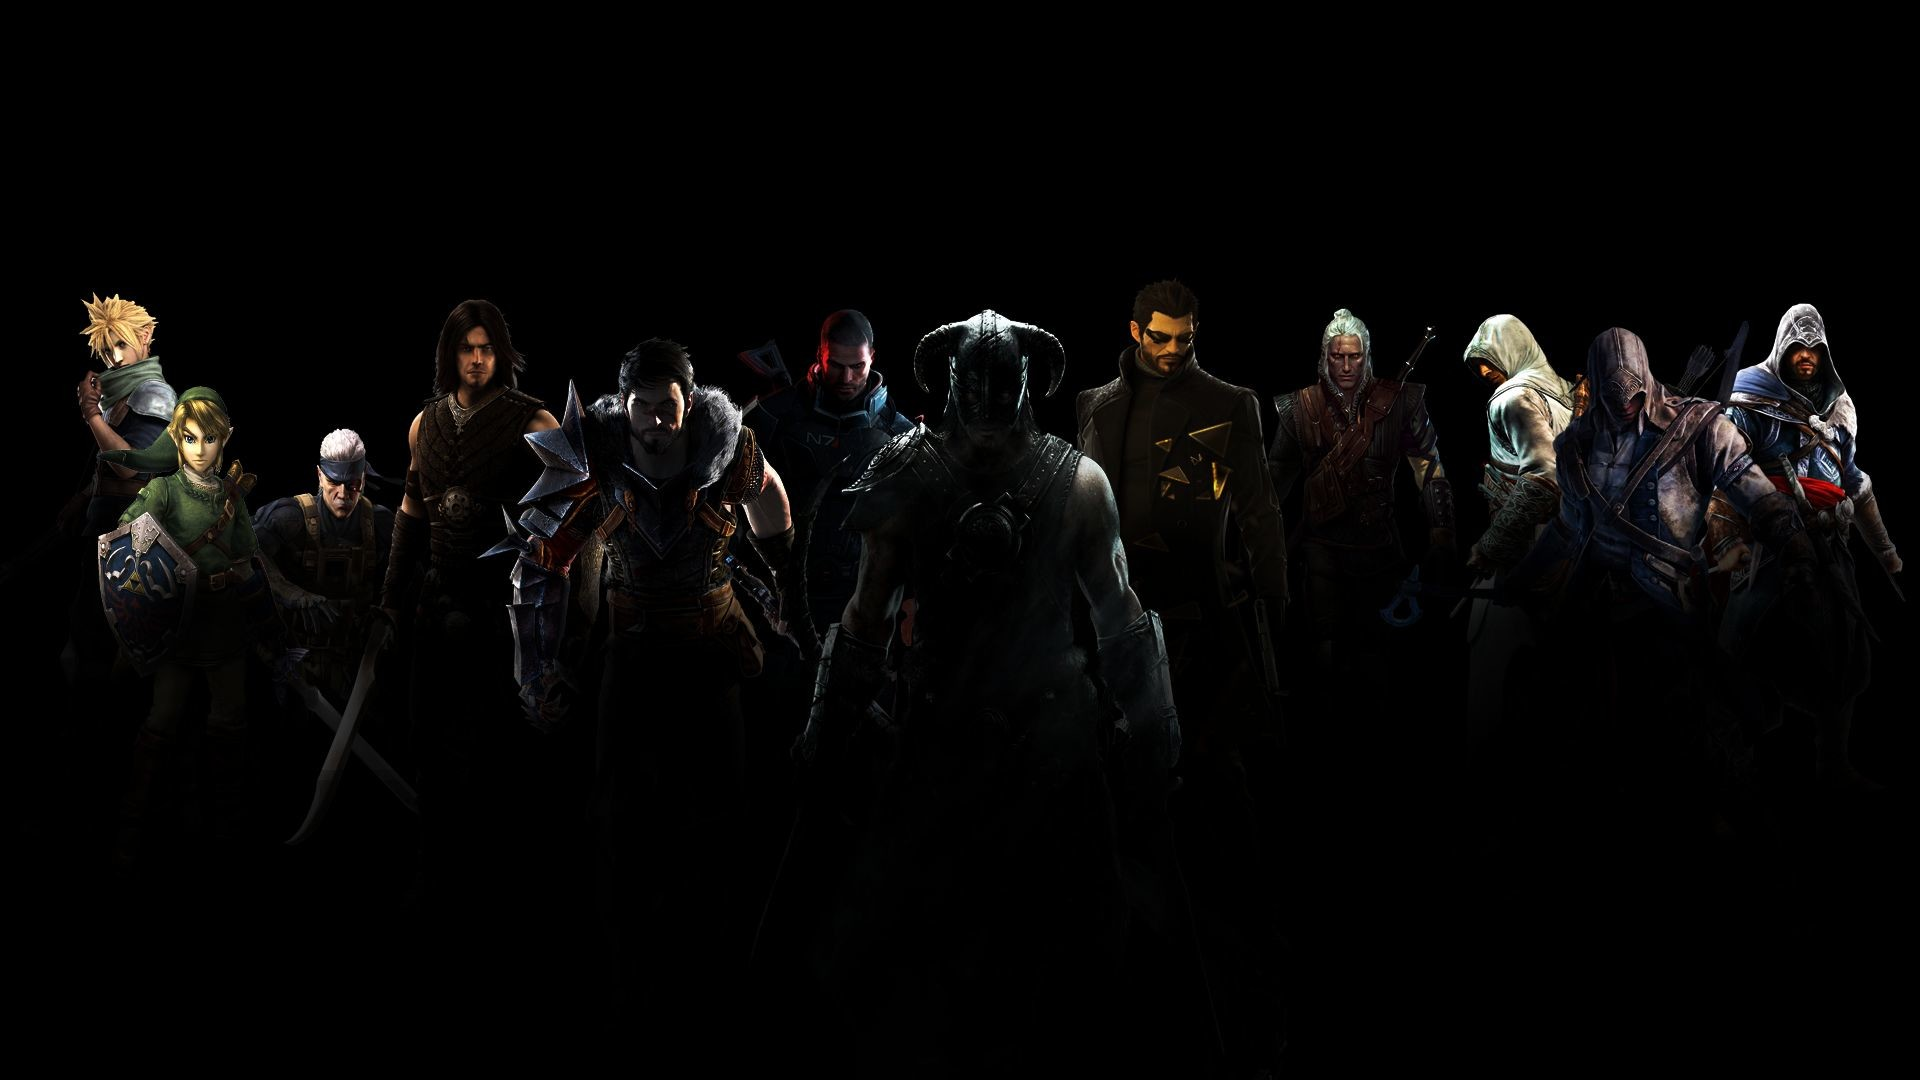 1920x1080 Video Game Characters Wallpapers High Definition Is Cool Wallpapers